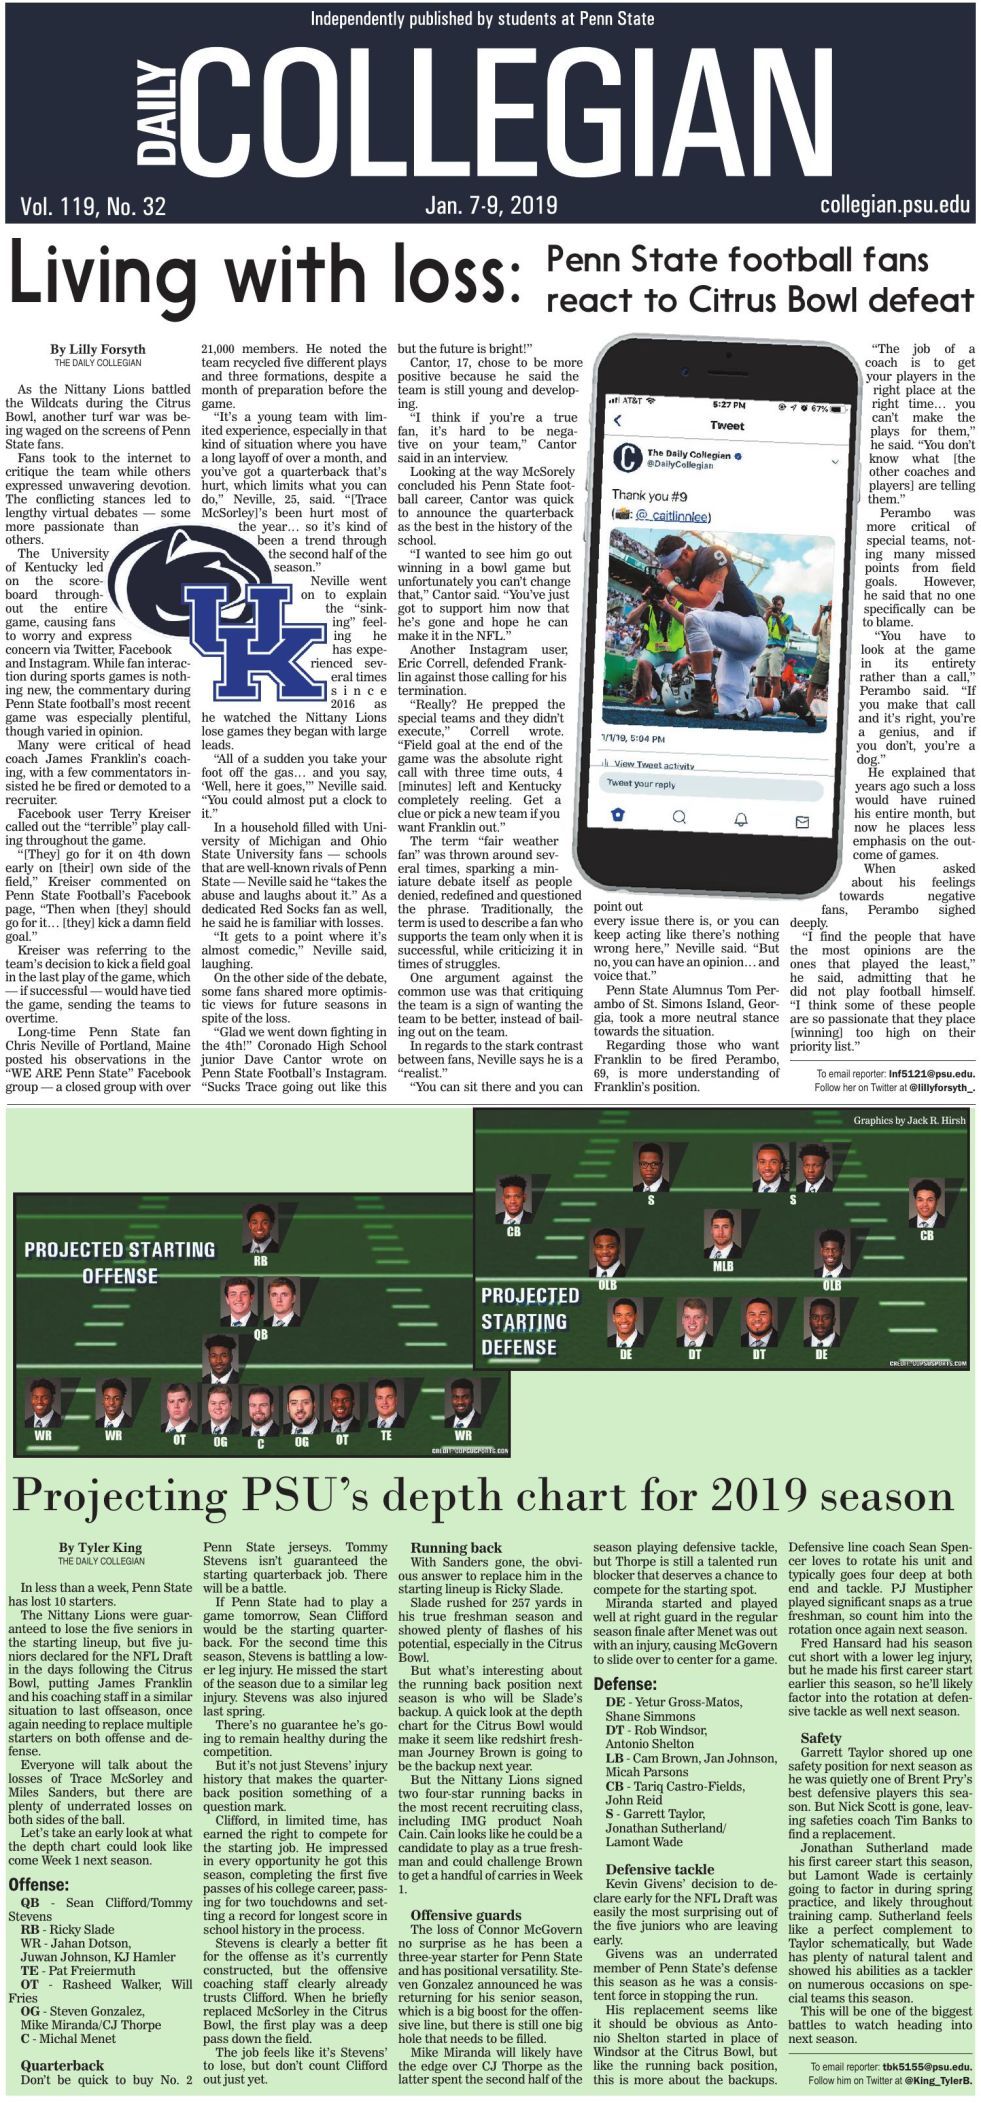 The Daily Collegian for Jan. 7, 2019